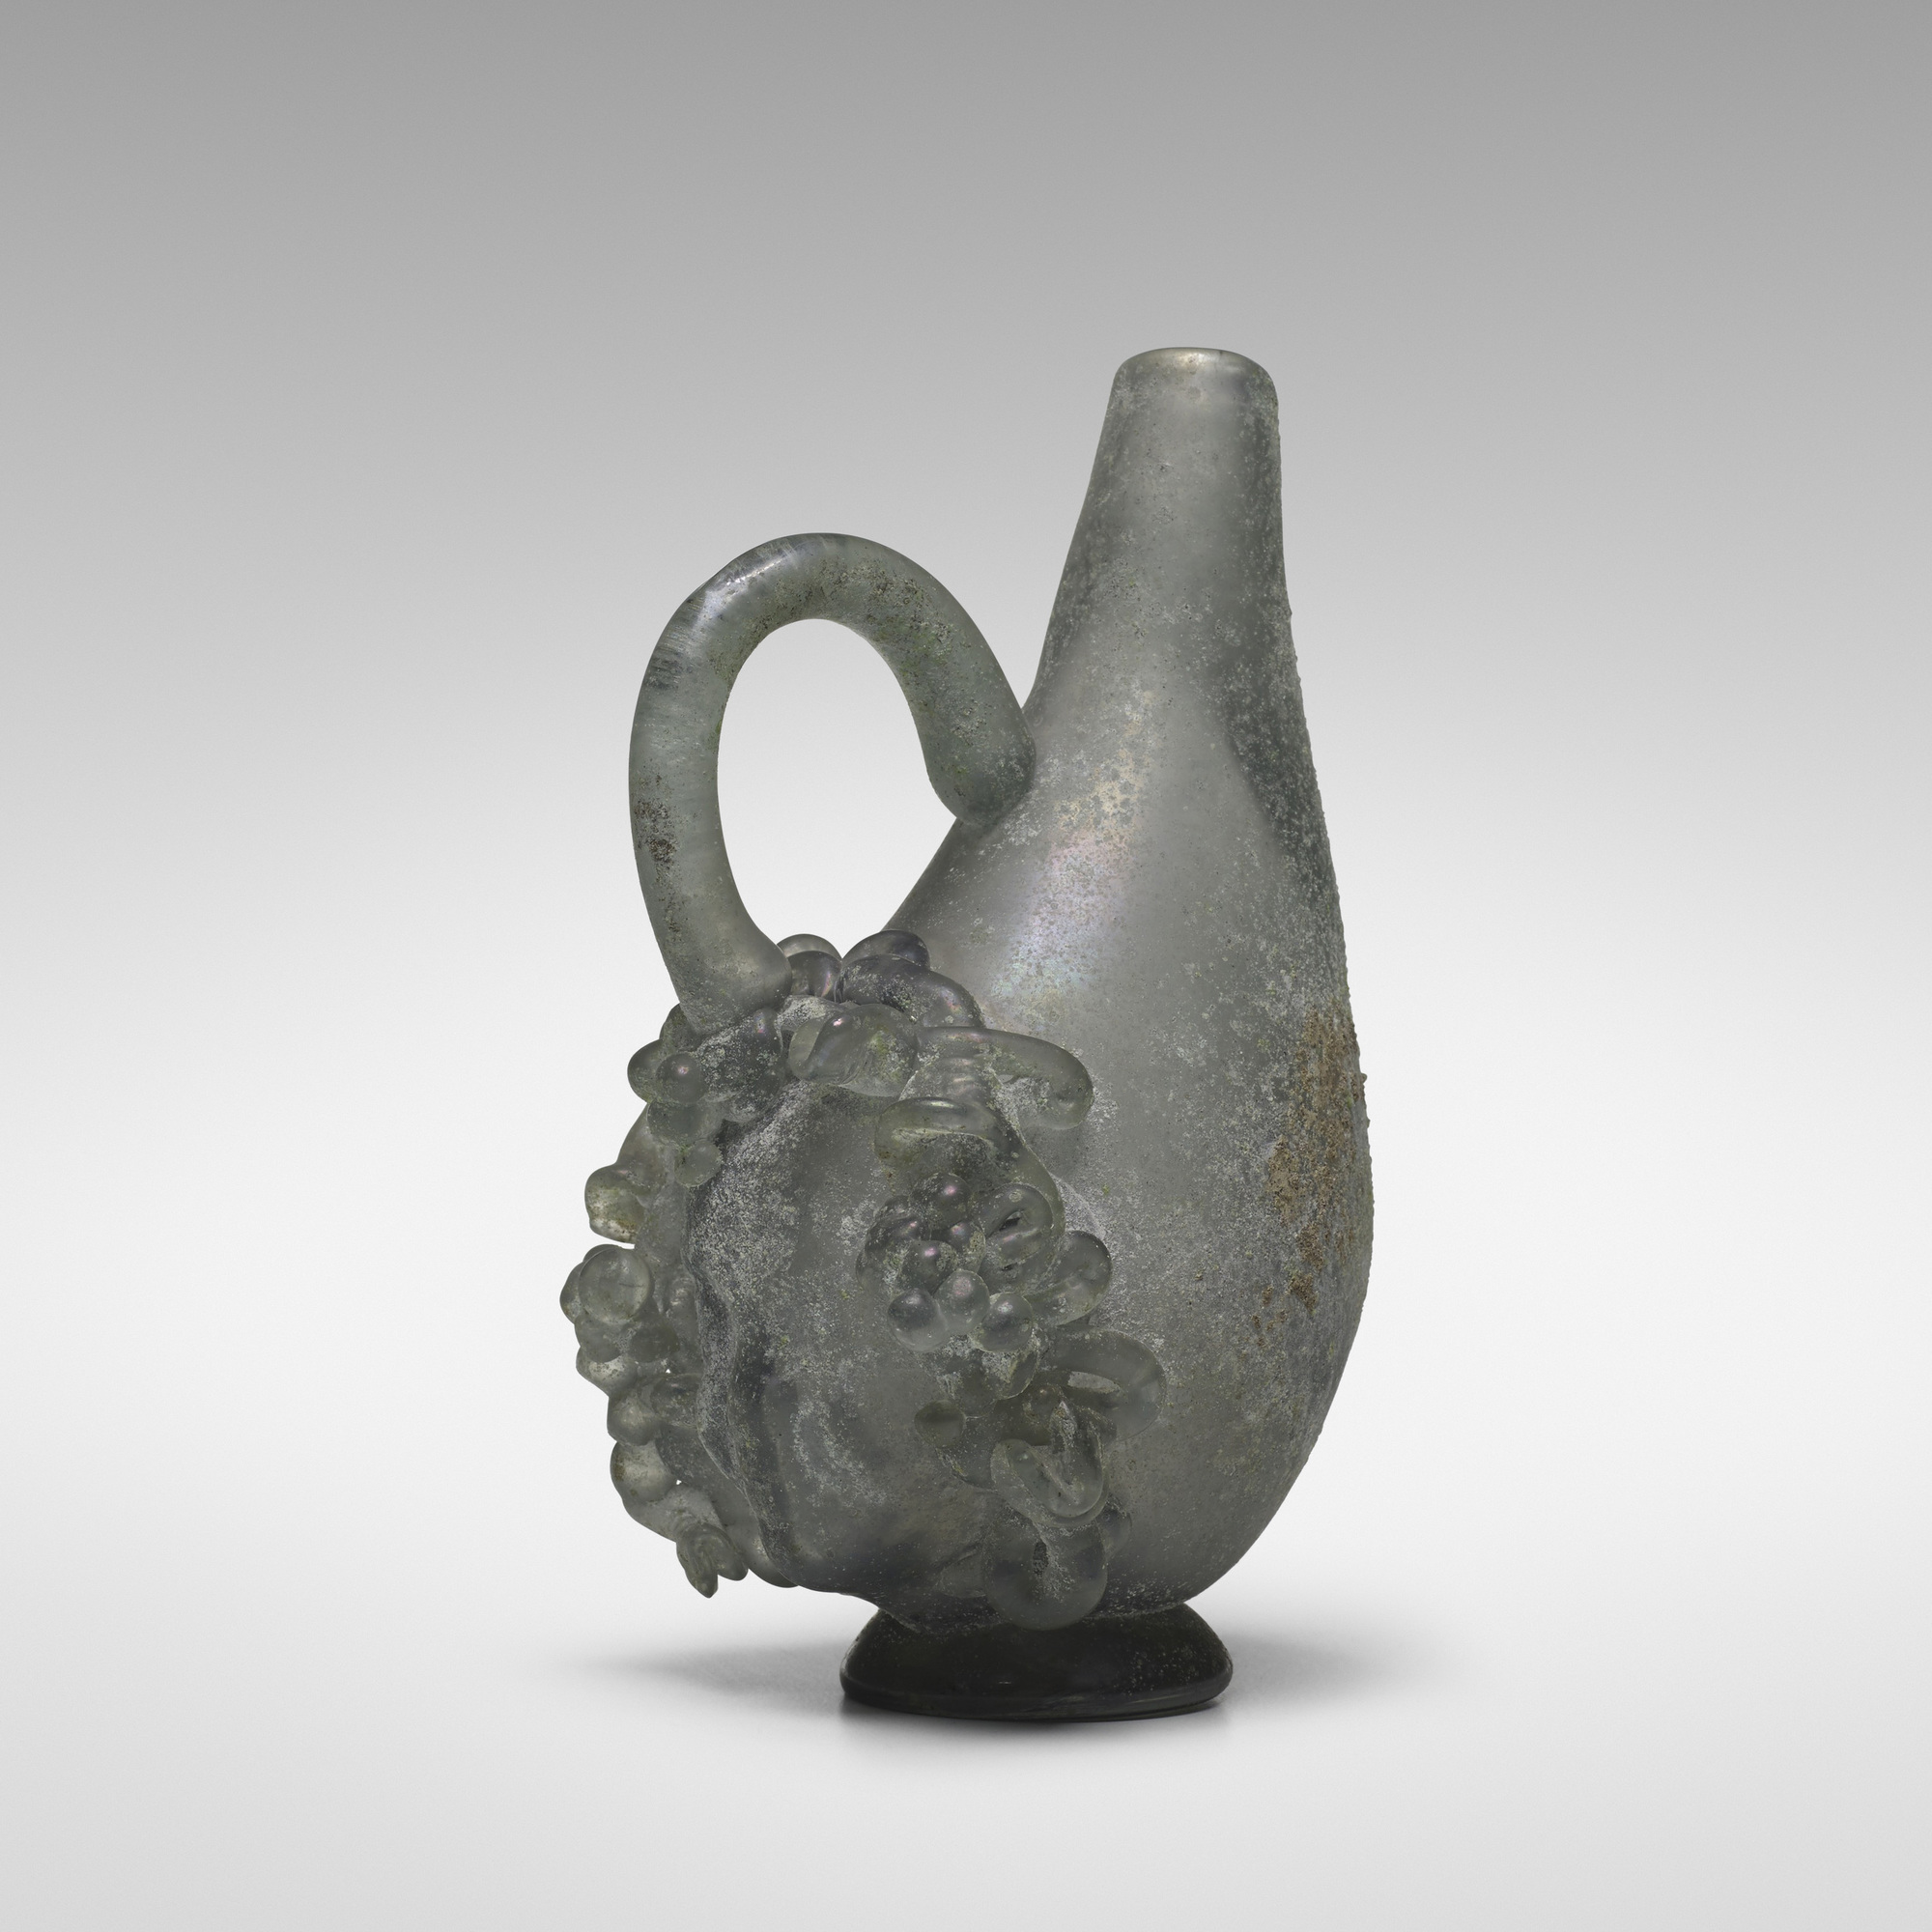 173: Ermanno Nason / vase with applications (2 of 3)